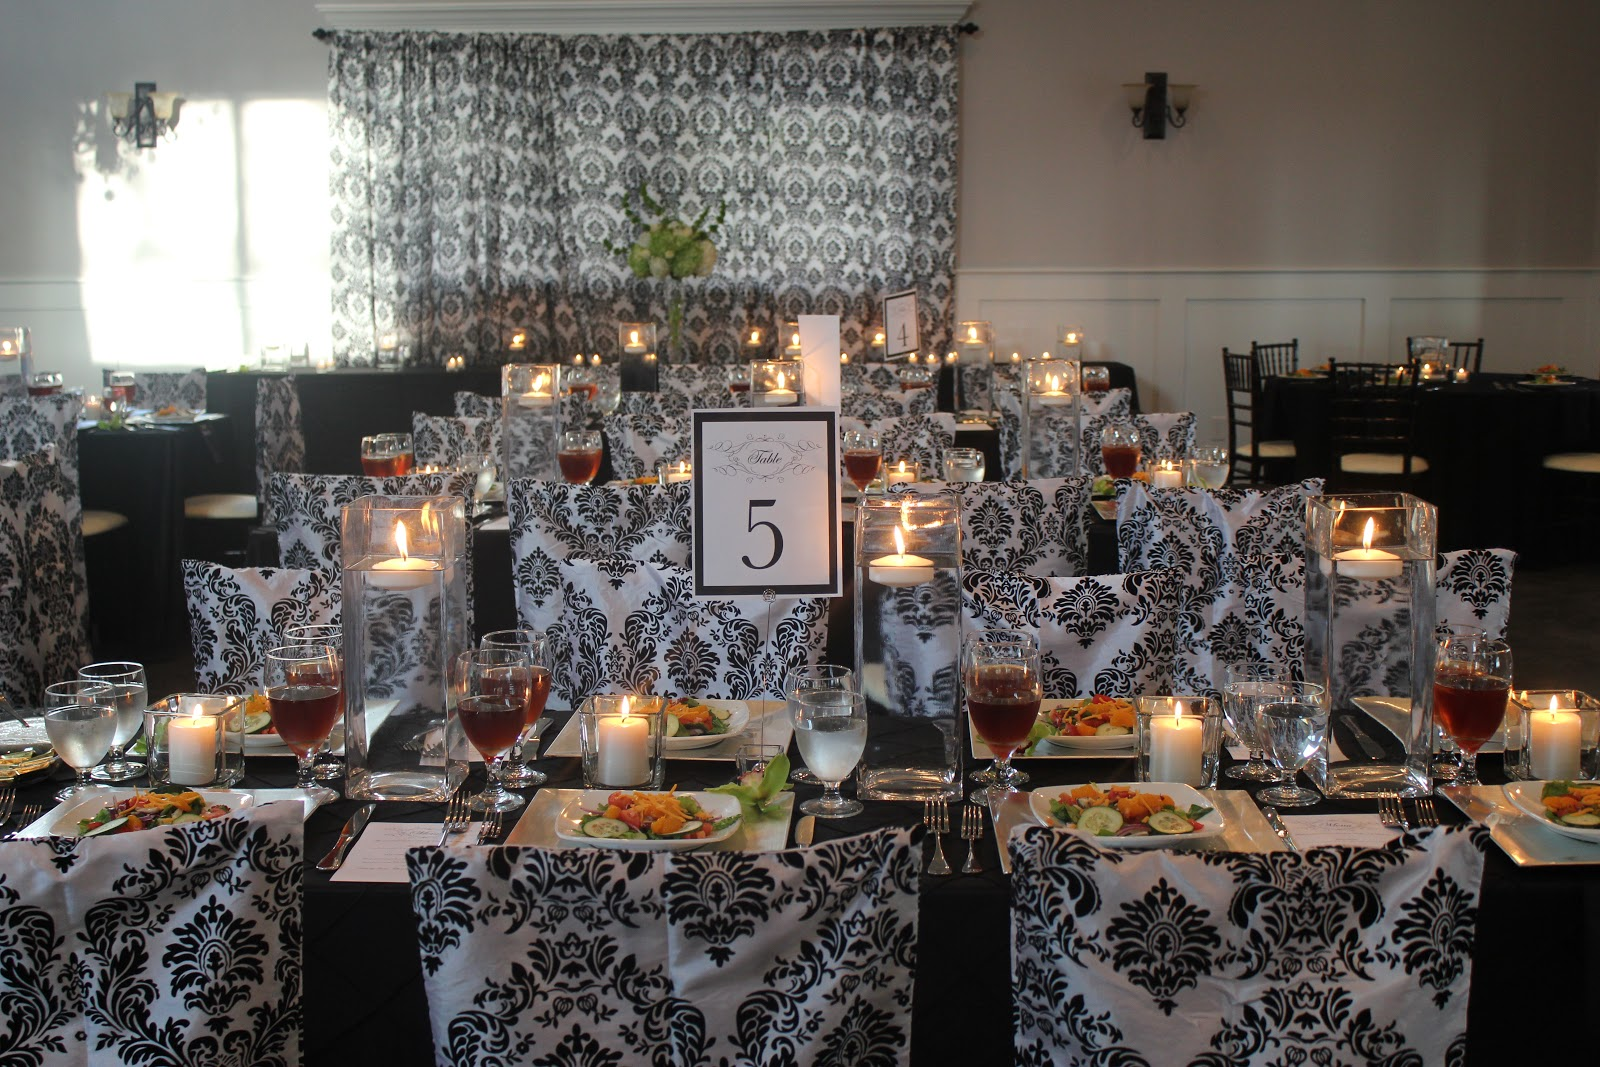 40th Birthday Party Decorations Image Inspiration Of & Decoration Ideas For 40th Birthday Party - Elitflat